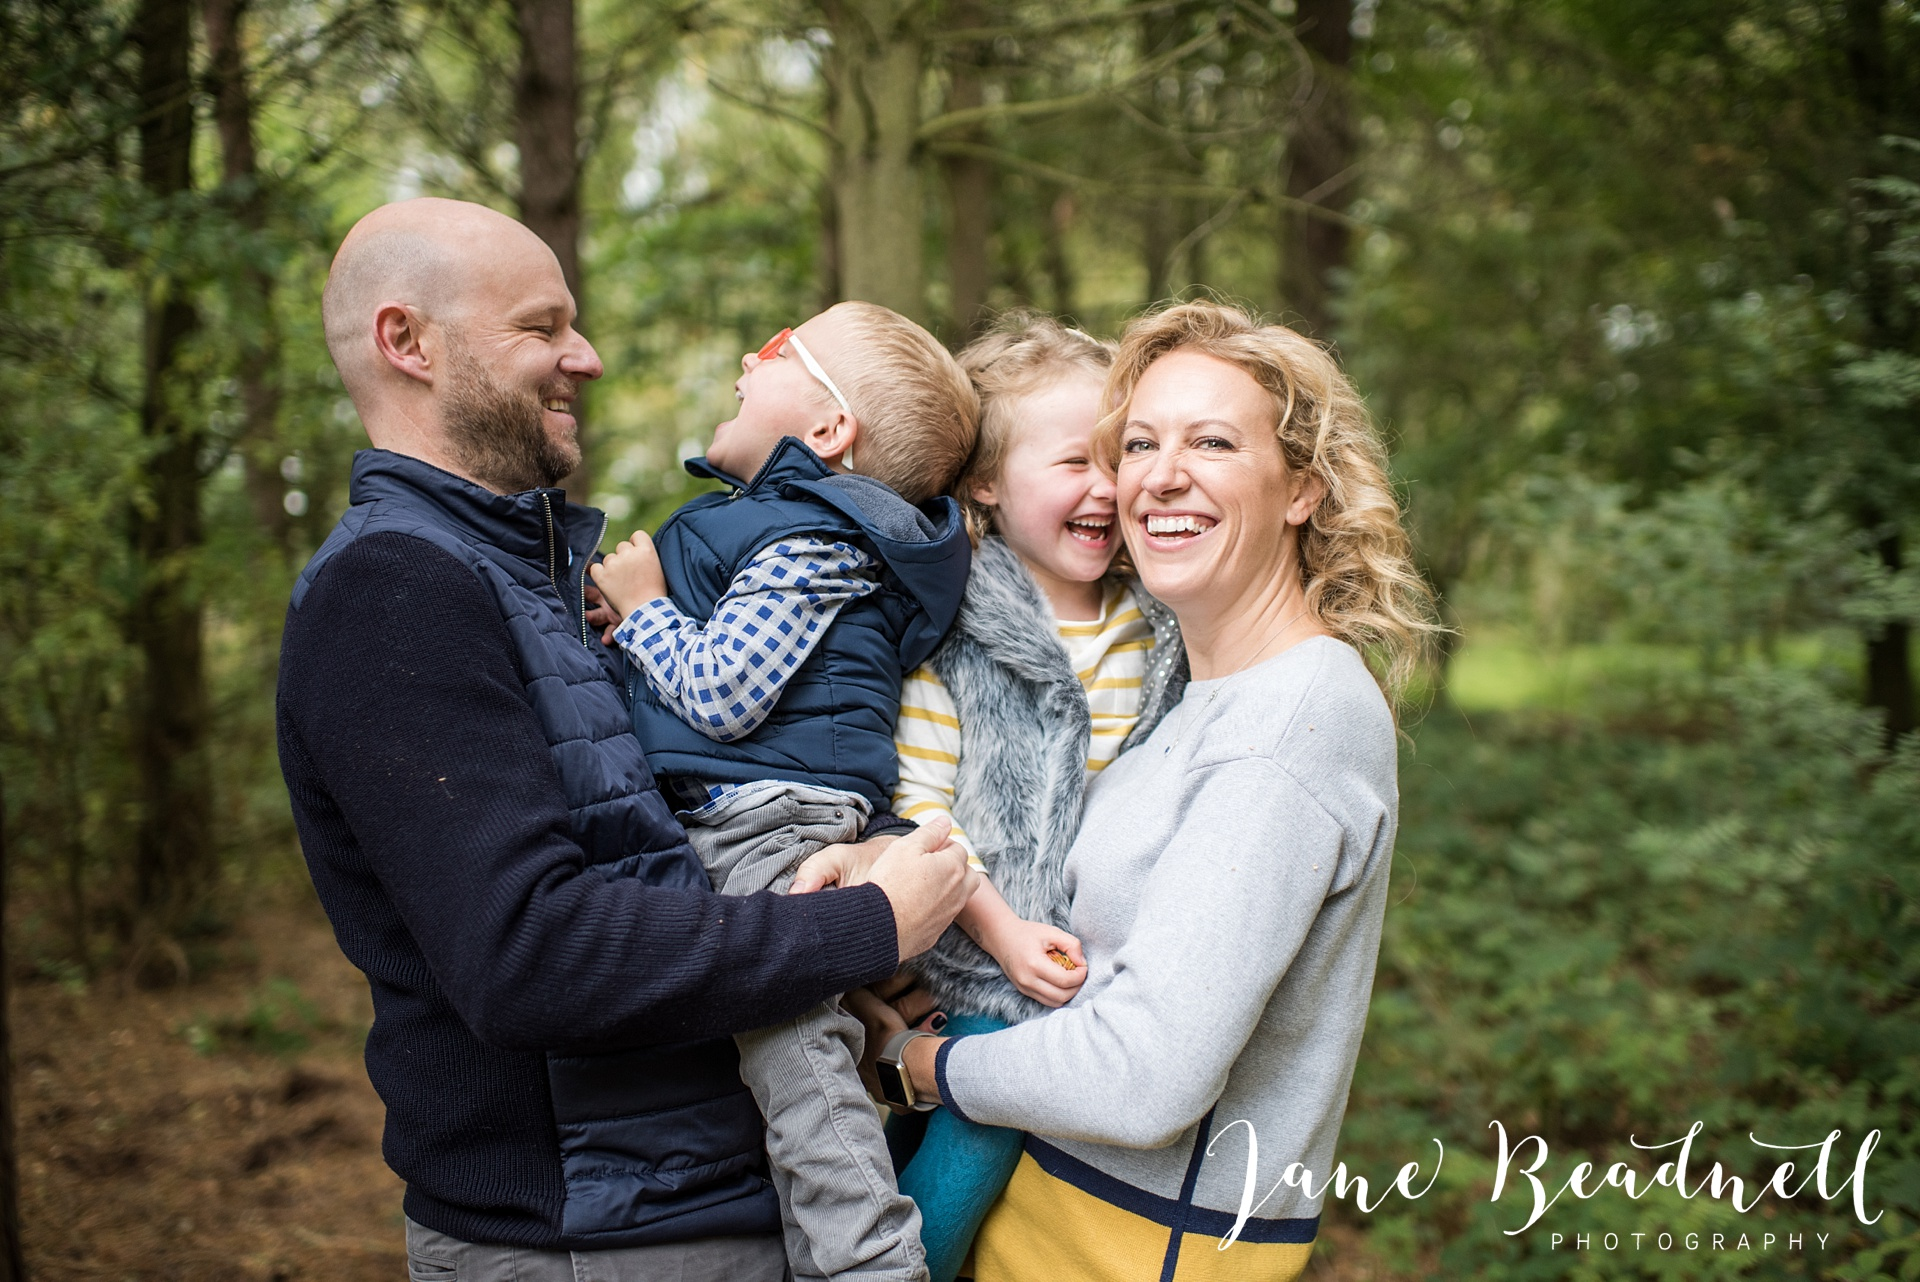 Family Portrait photography Otley, Family photography, Family photos Otley, Leeds family photography by Jane Beadnell